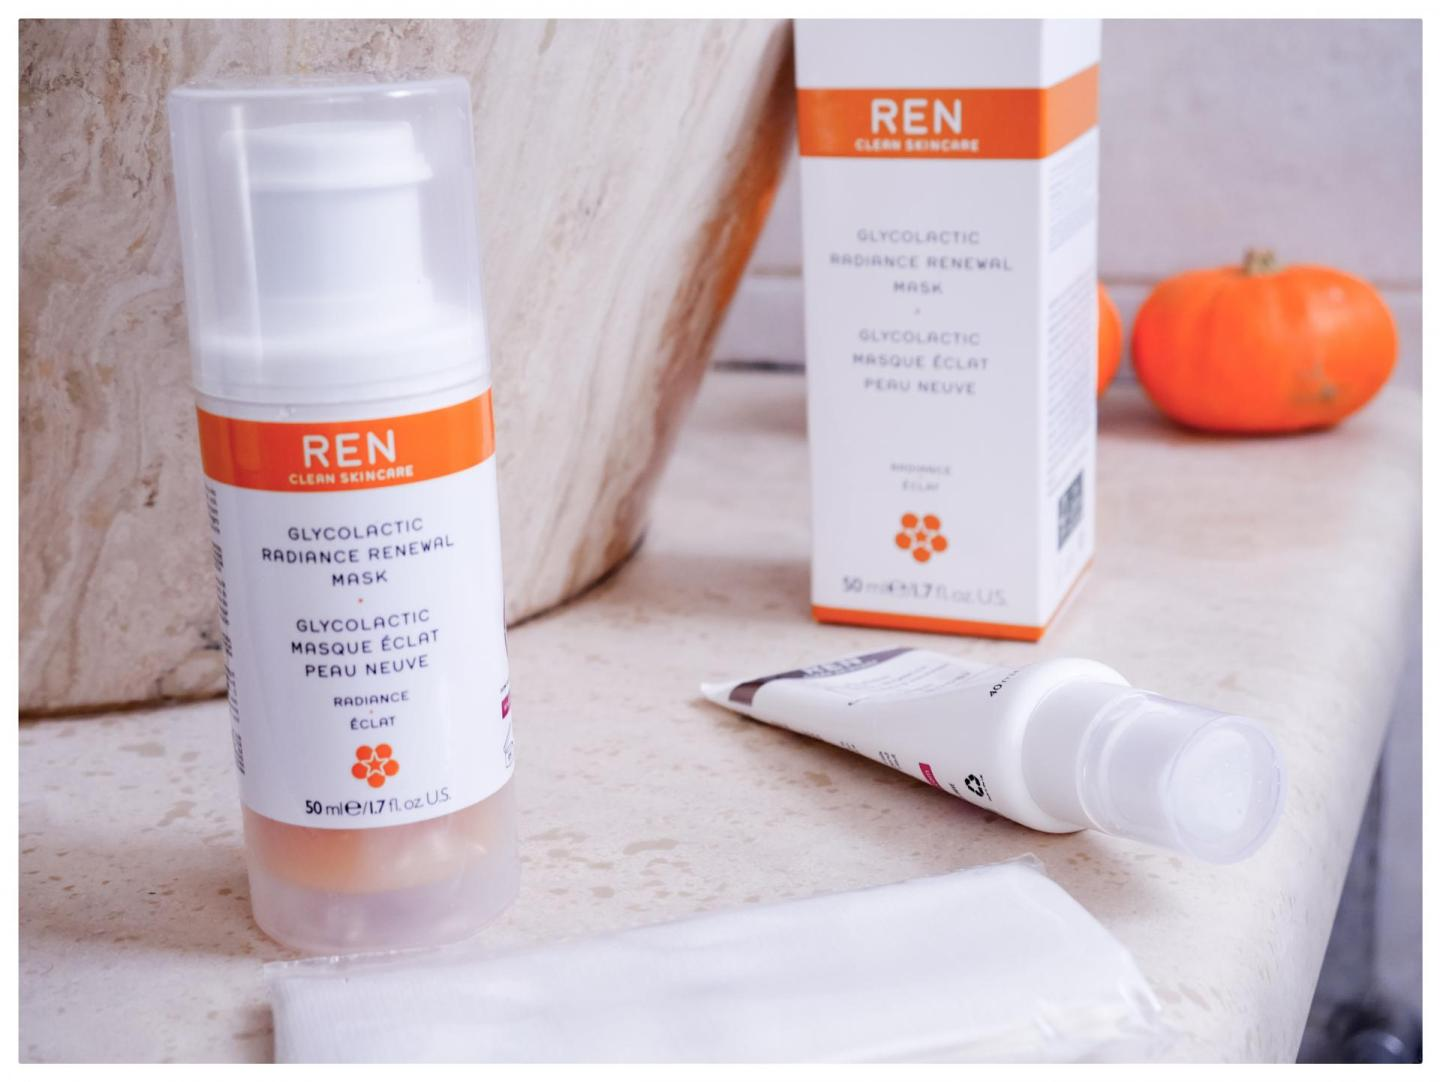 ren-skincare-glycolactic-radiance-renewal-mask-review-kitty-and-b